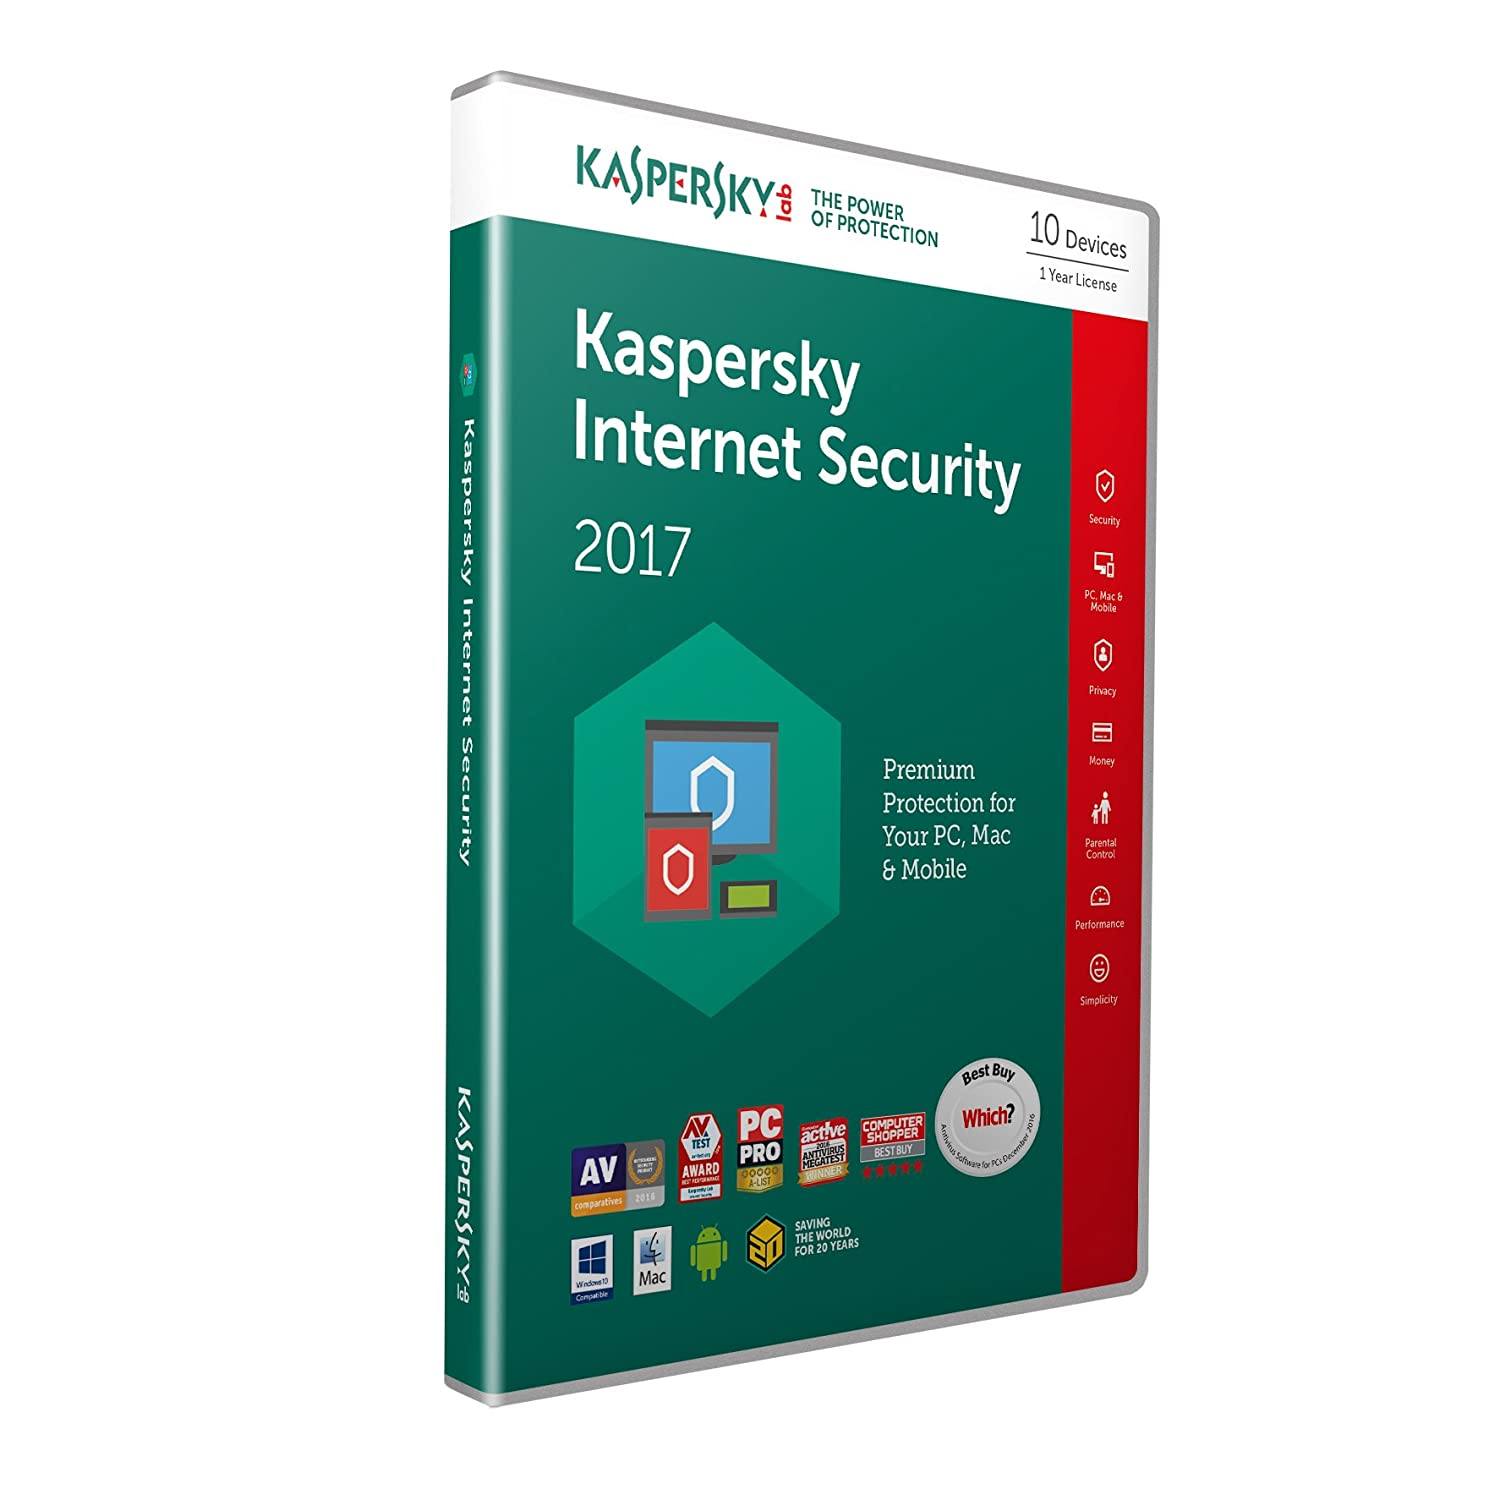 Kaspersky Internet Security 2017 10 Devices 1 Year PC Mac Android